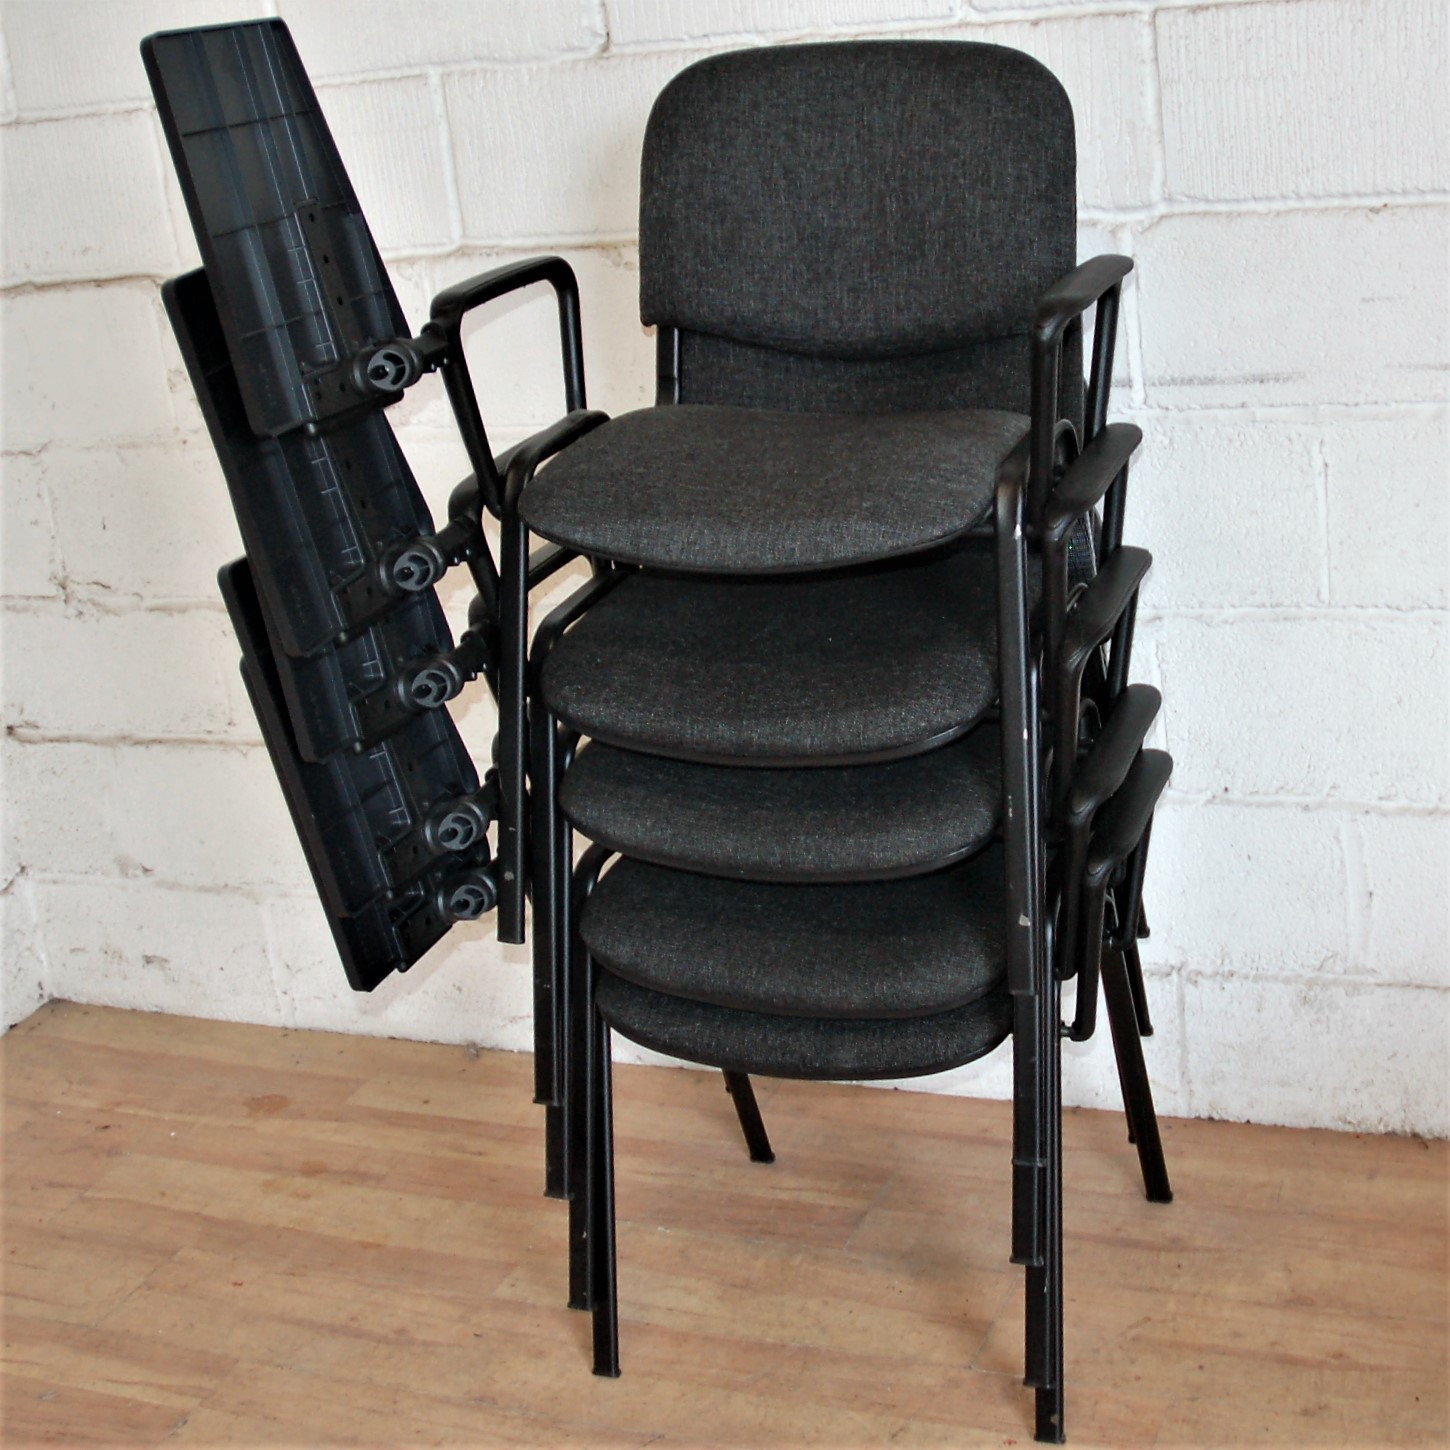 Set of 5 Stacking Chairs with Student Table 1116 Allard